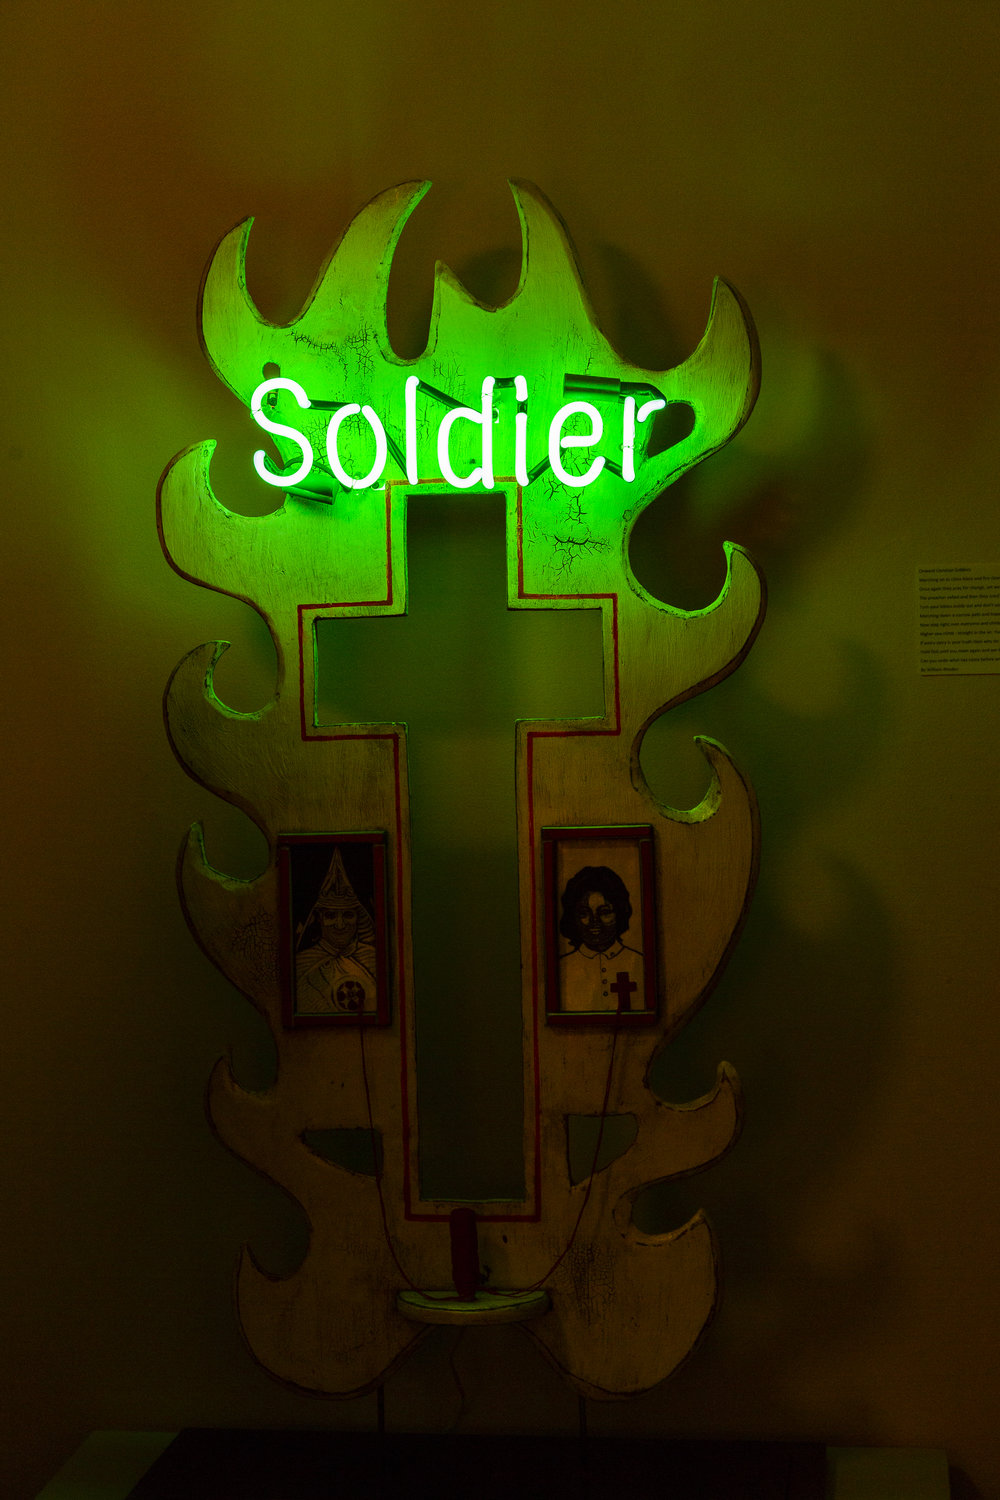 Soldier Installation at  3.9 Collective's  Room for  stARTup SF 2018